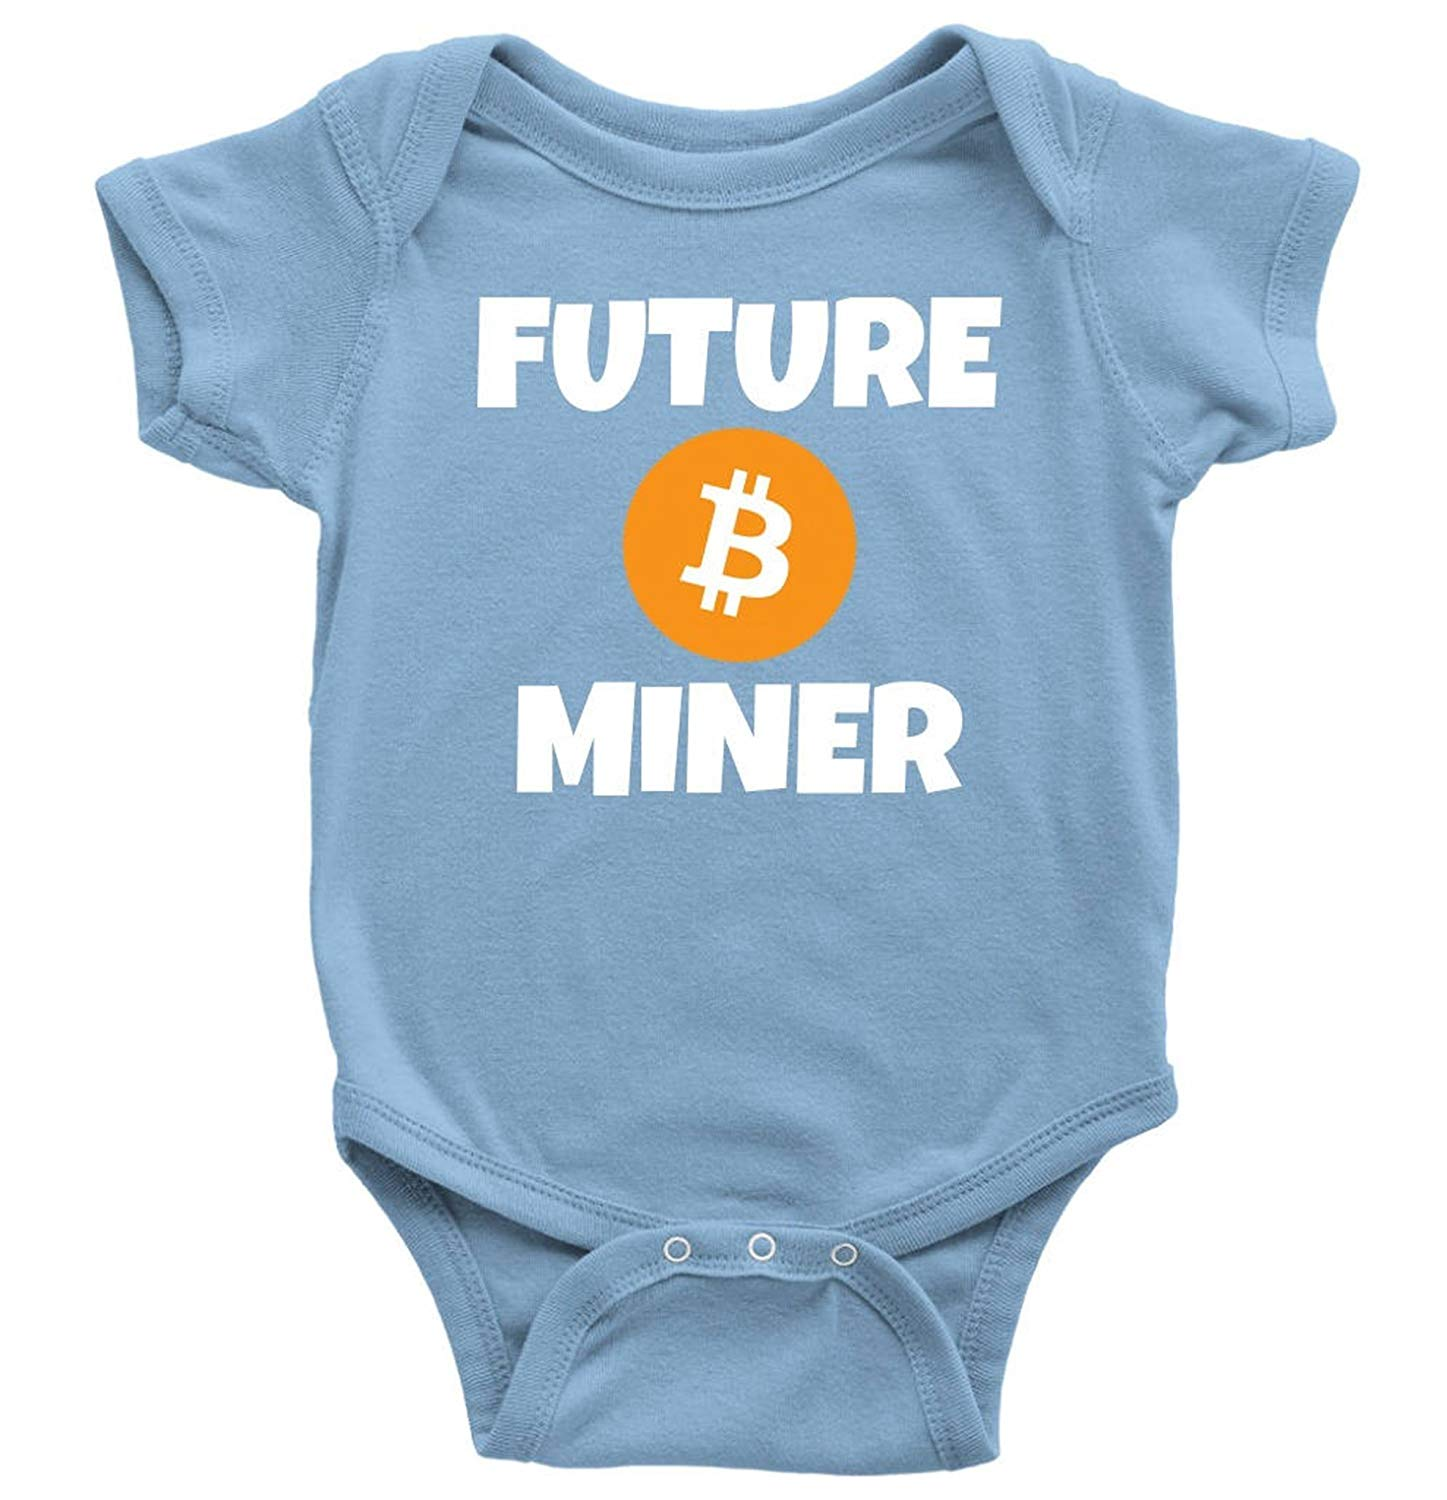 One-Piece Baby Bitcoin Shirt by InkCallies